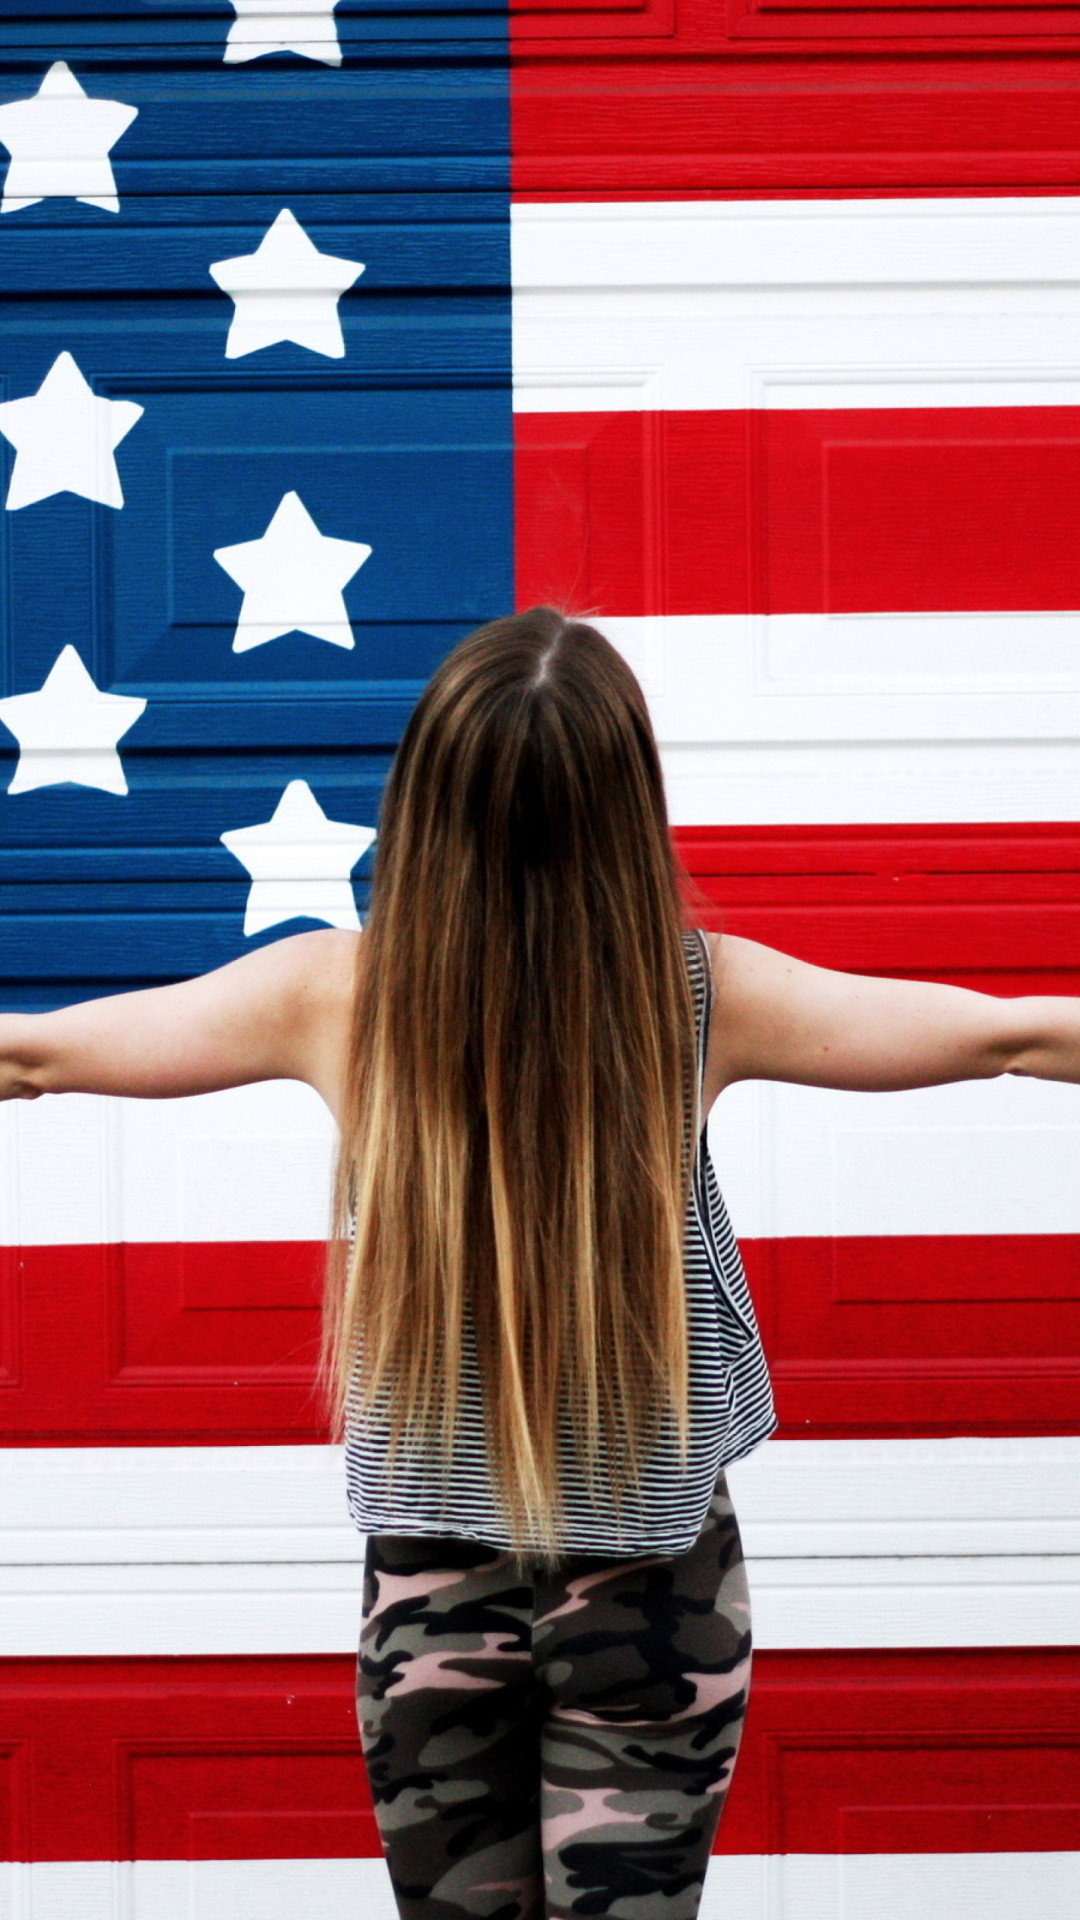 american girl in front of usa flags